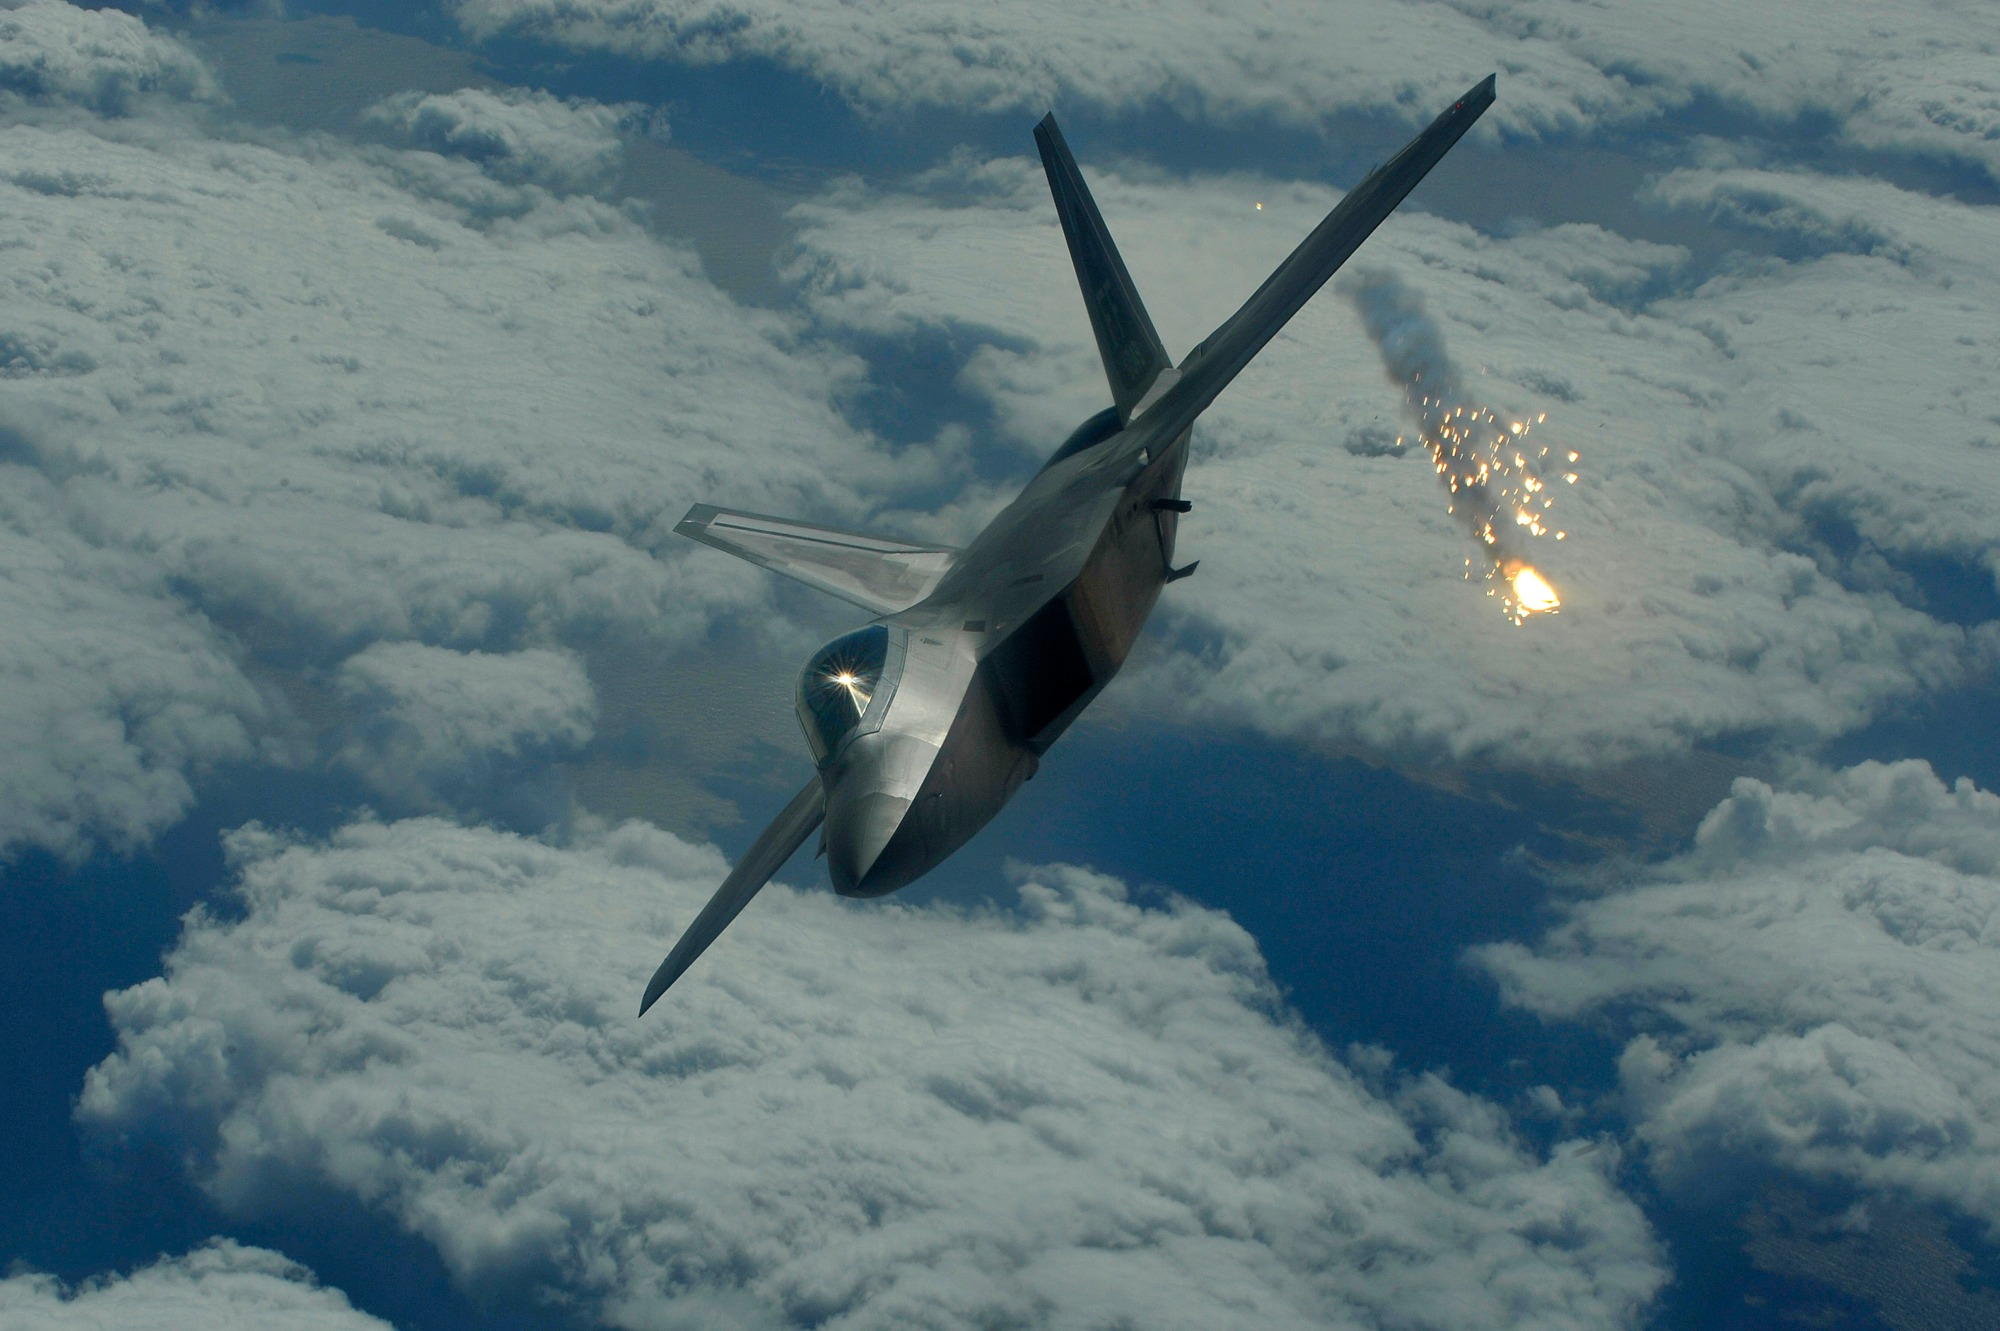 Who Flies Away When an F-22 Raptor And Russia's Su-57 Do Battle?